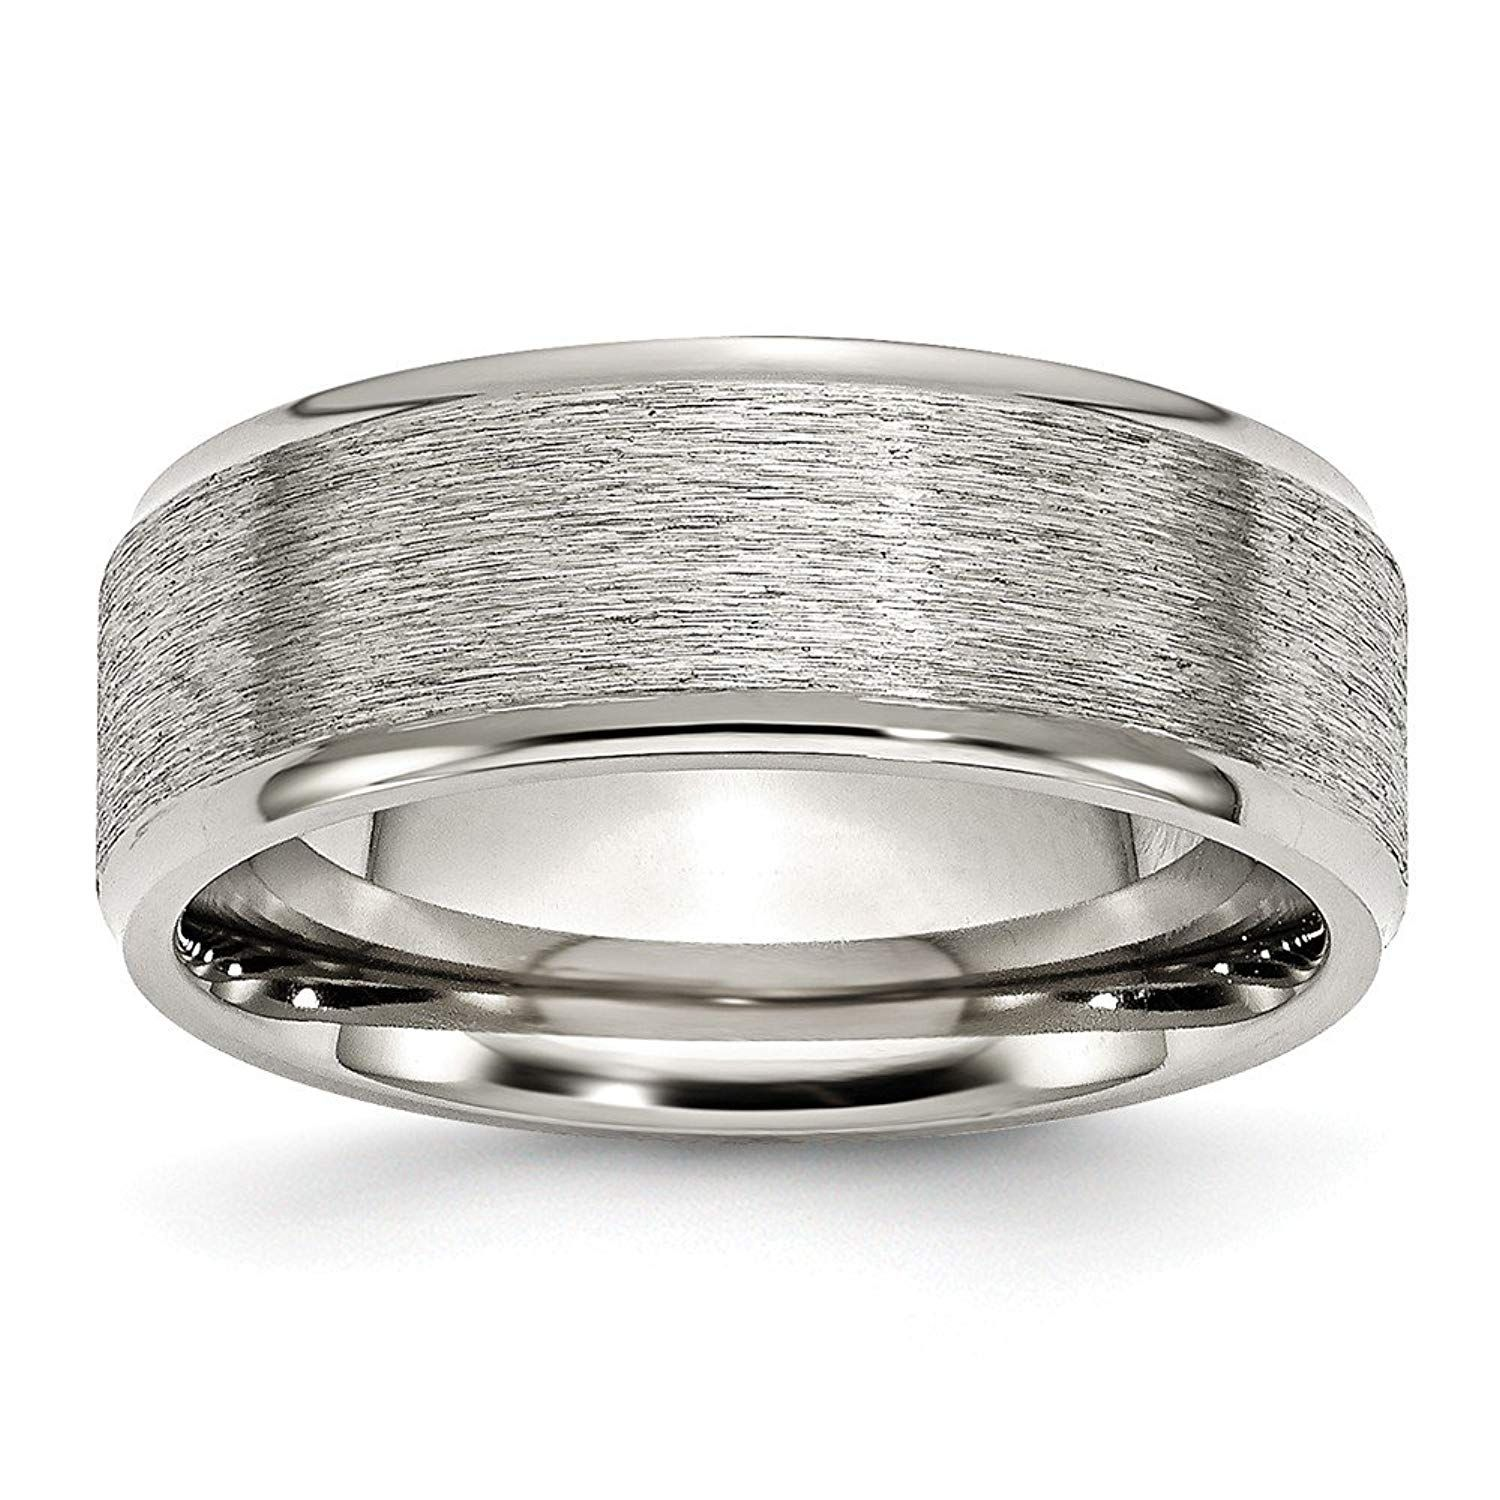 Perfect Jewelry Gift Stainless Steel Ridged Edge 8mm